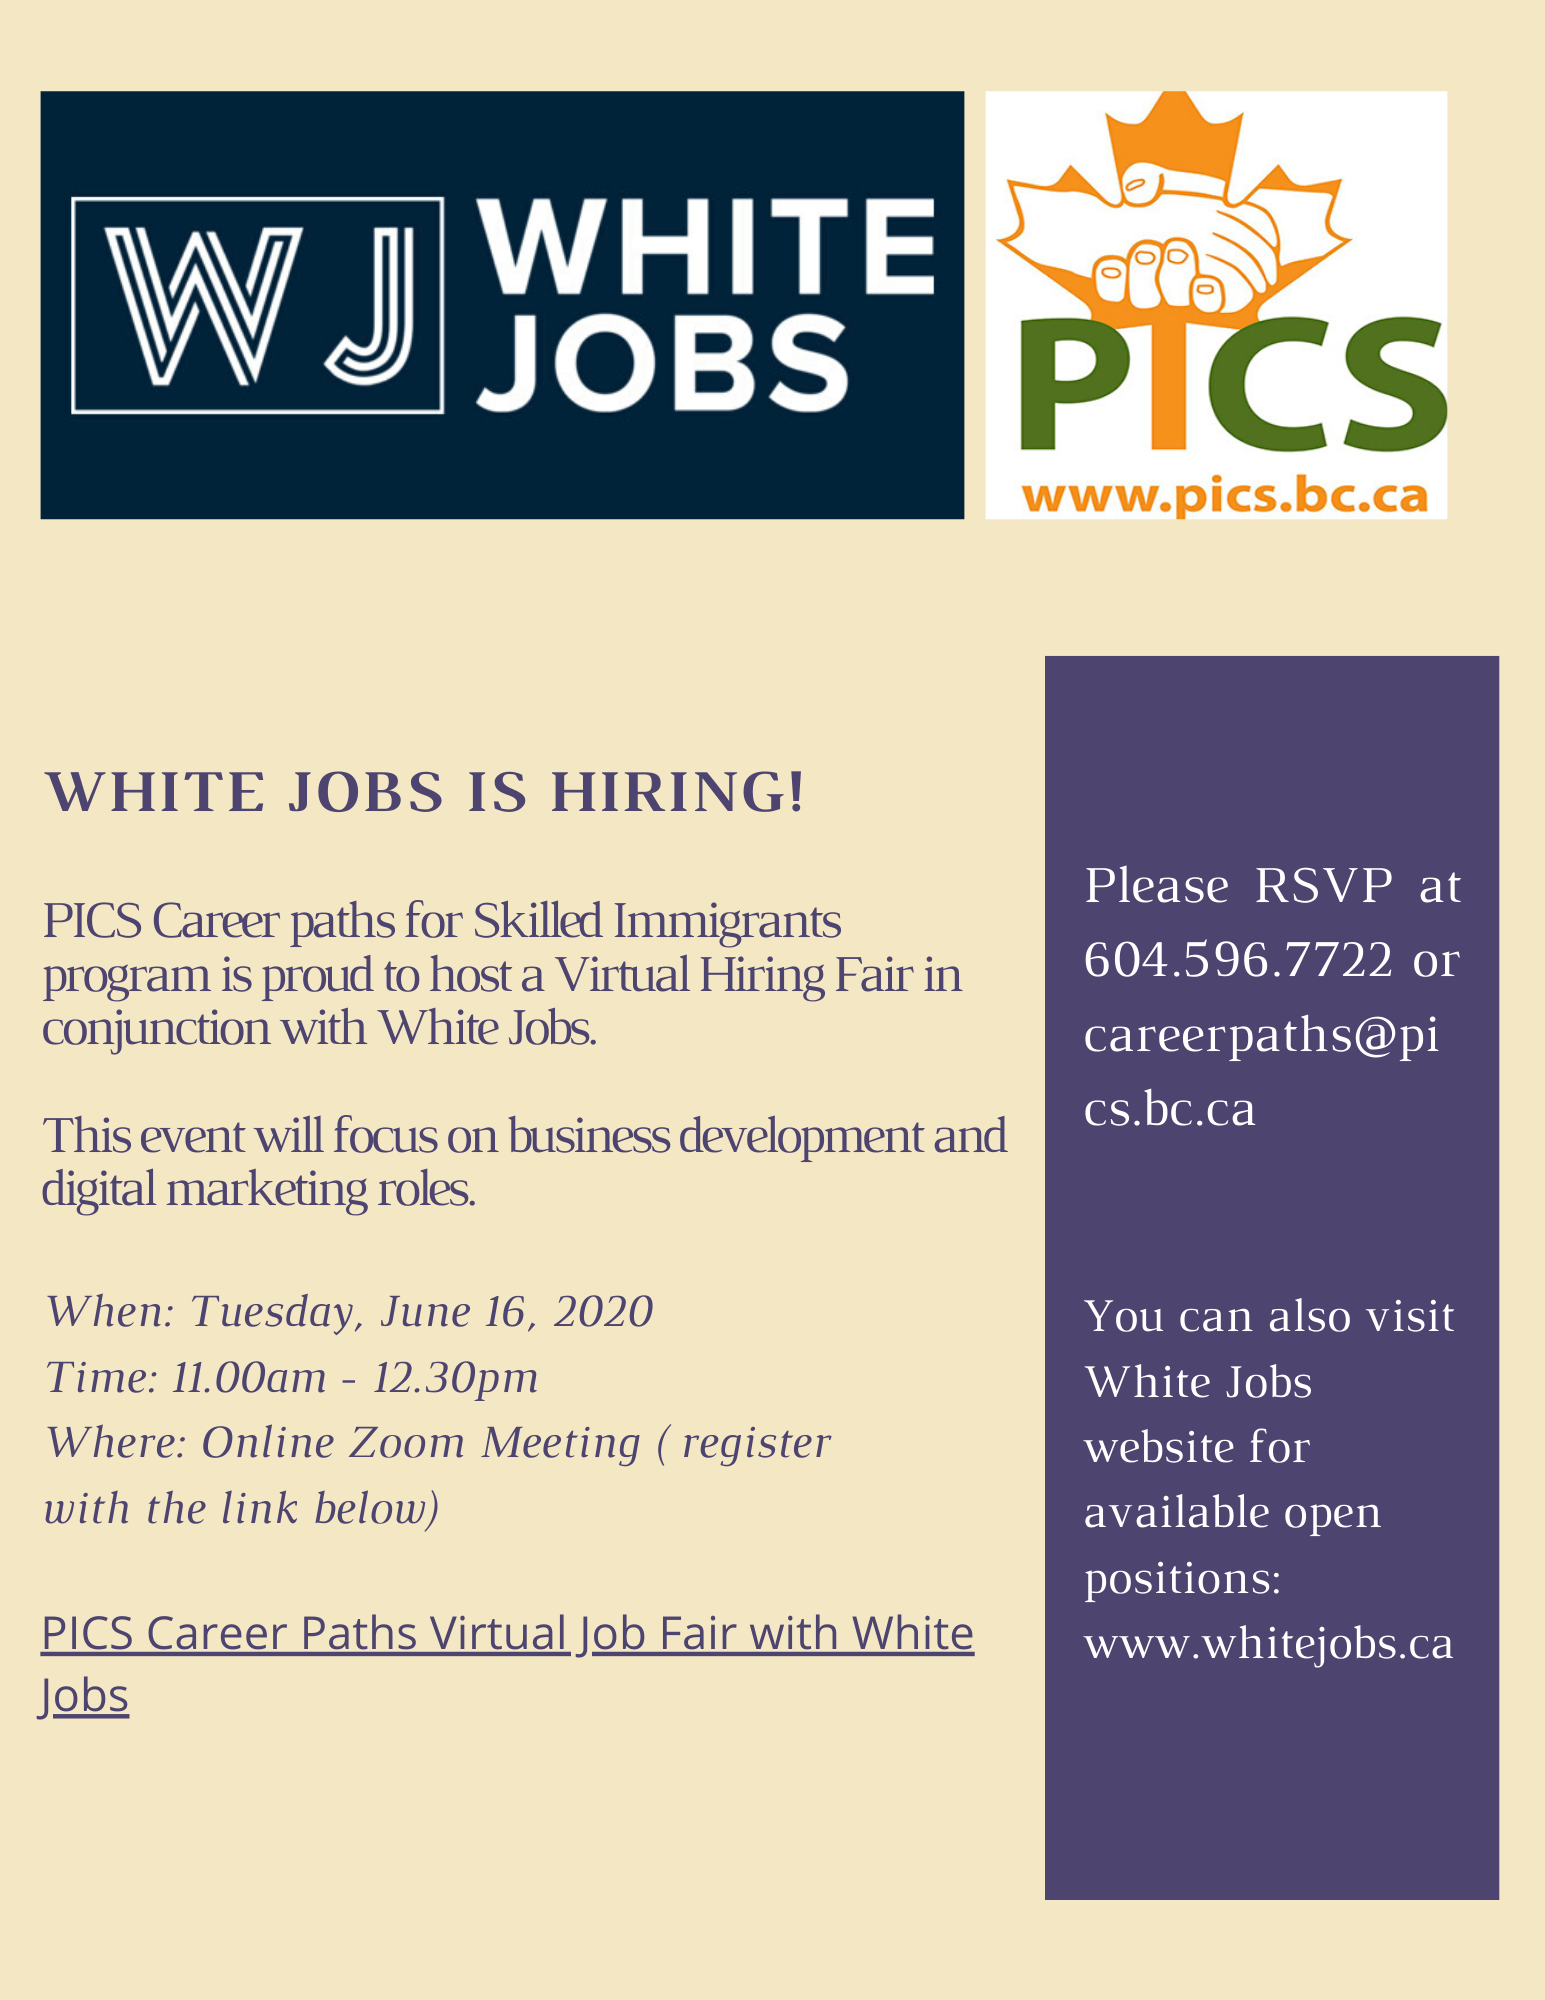 Virtual Hiring Fair in association wit PICS